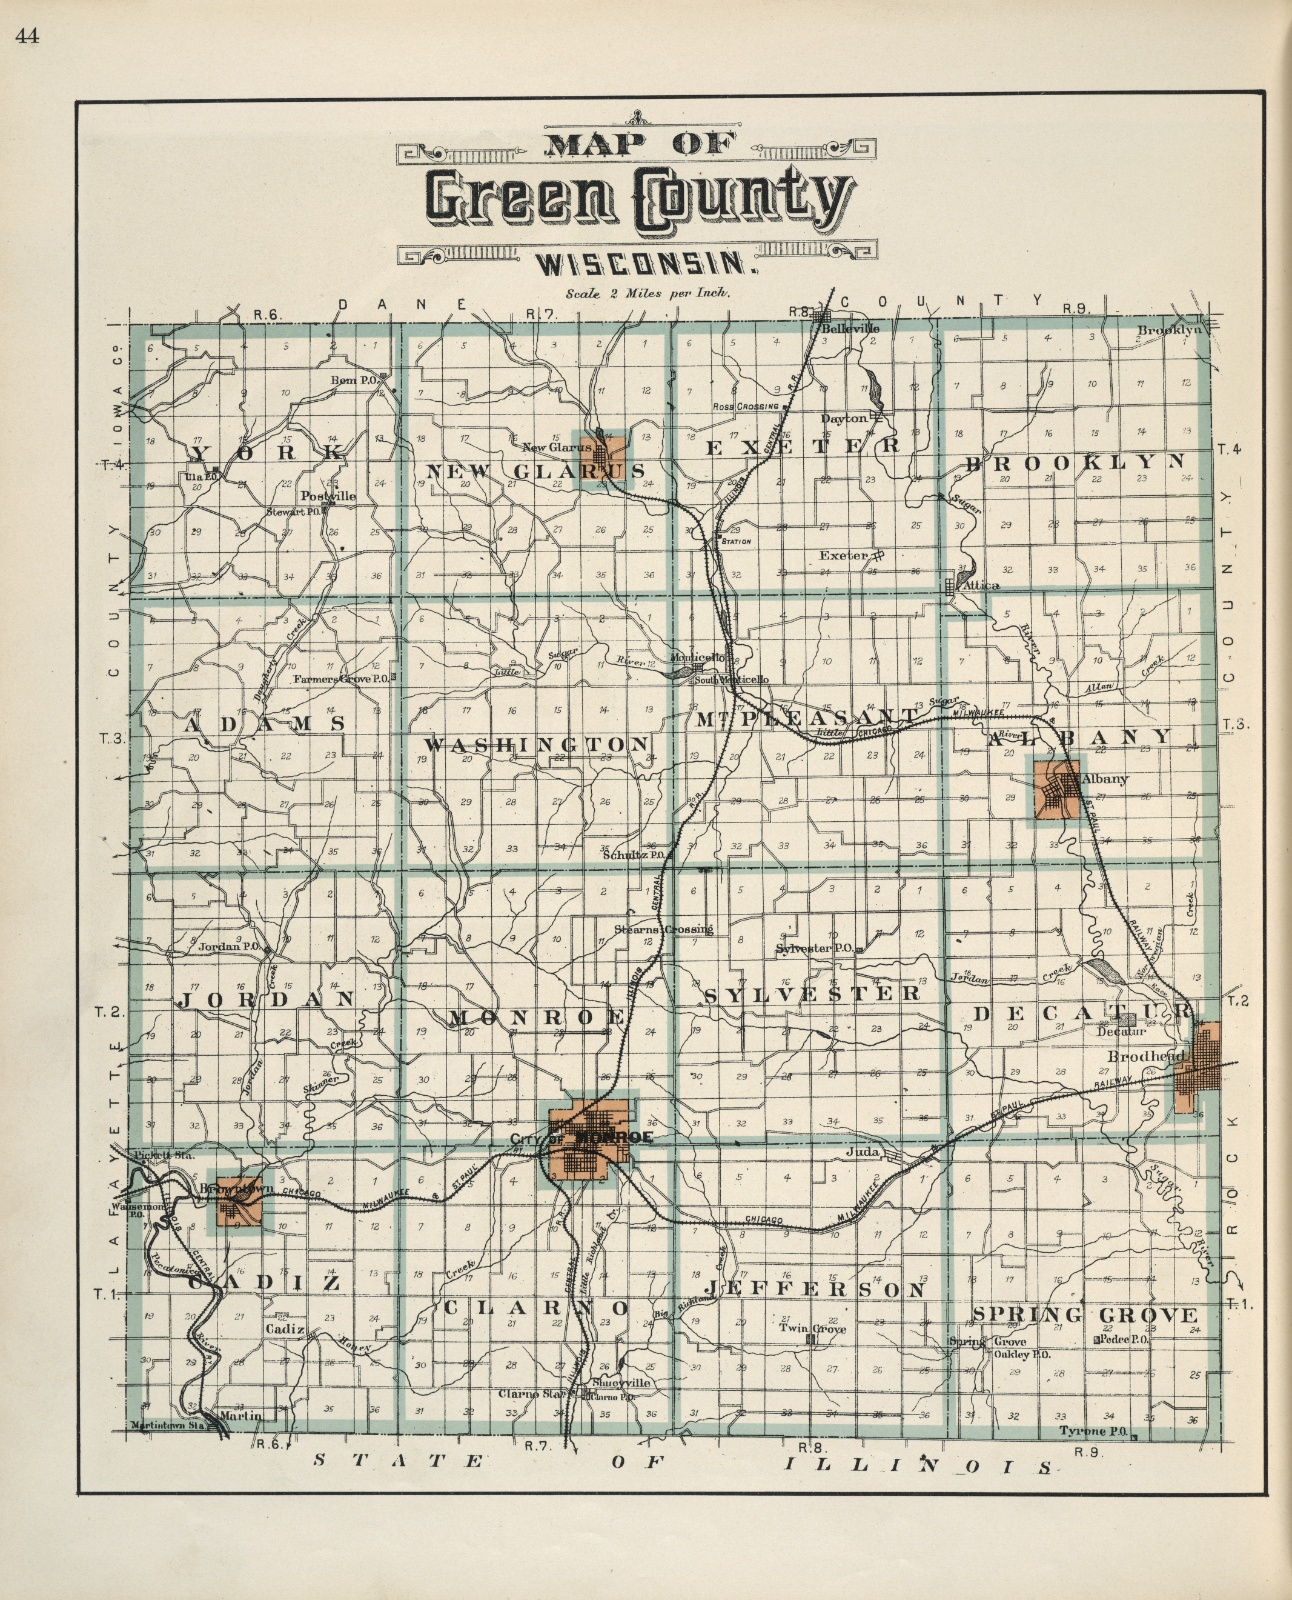 Plat-book-of-Green-County-Wisconsin-1902-p44